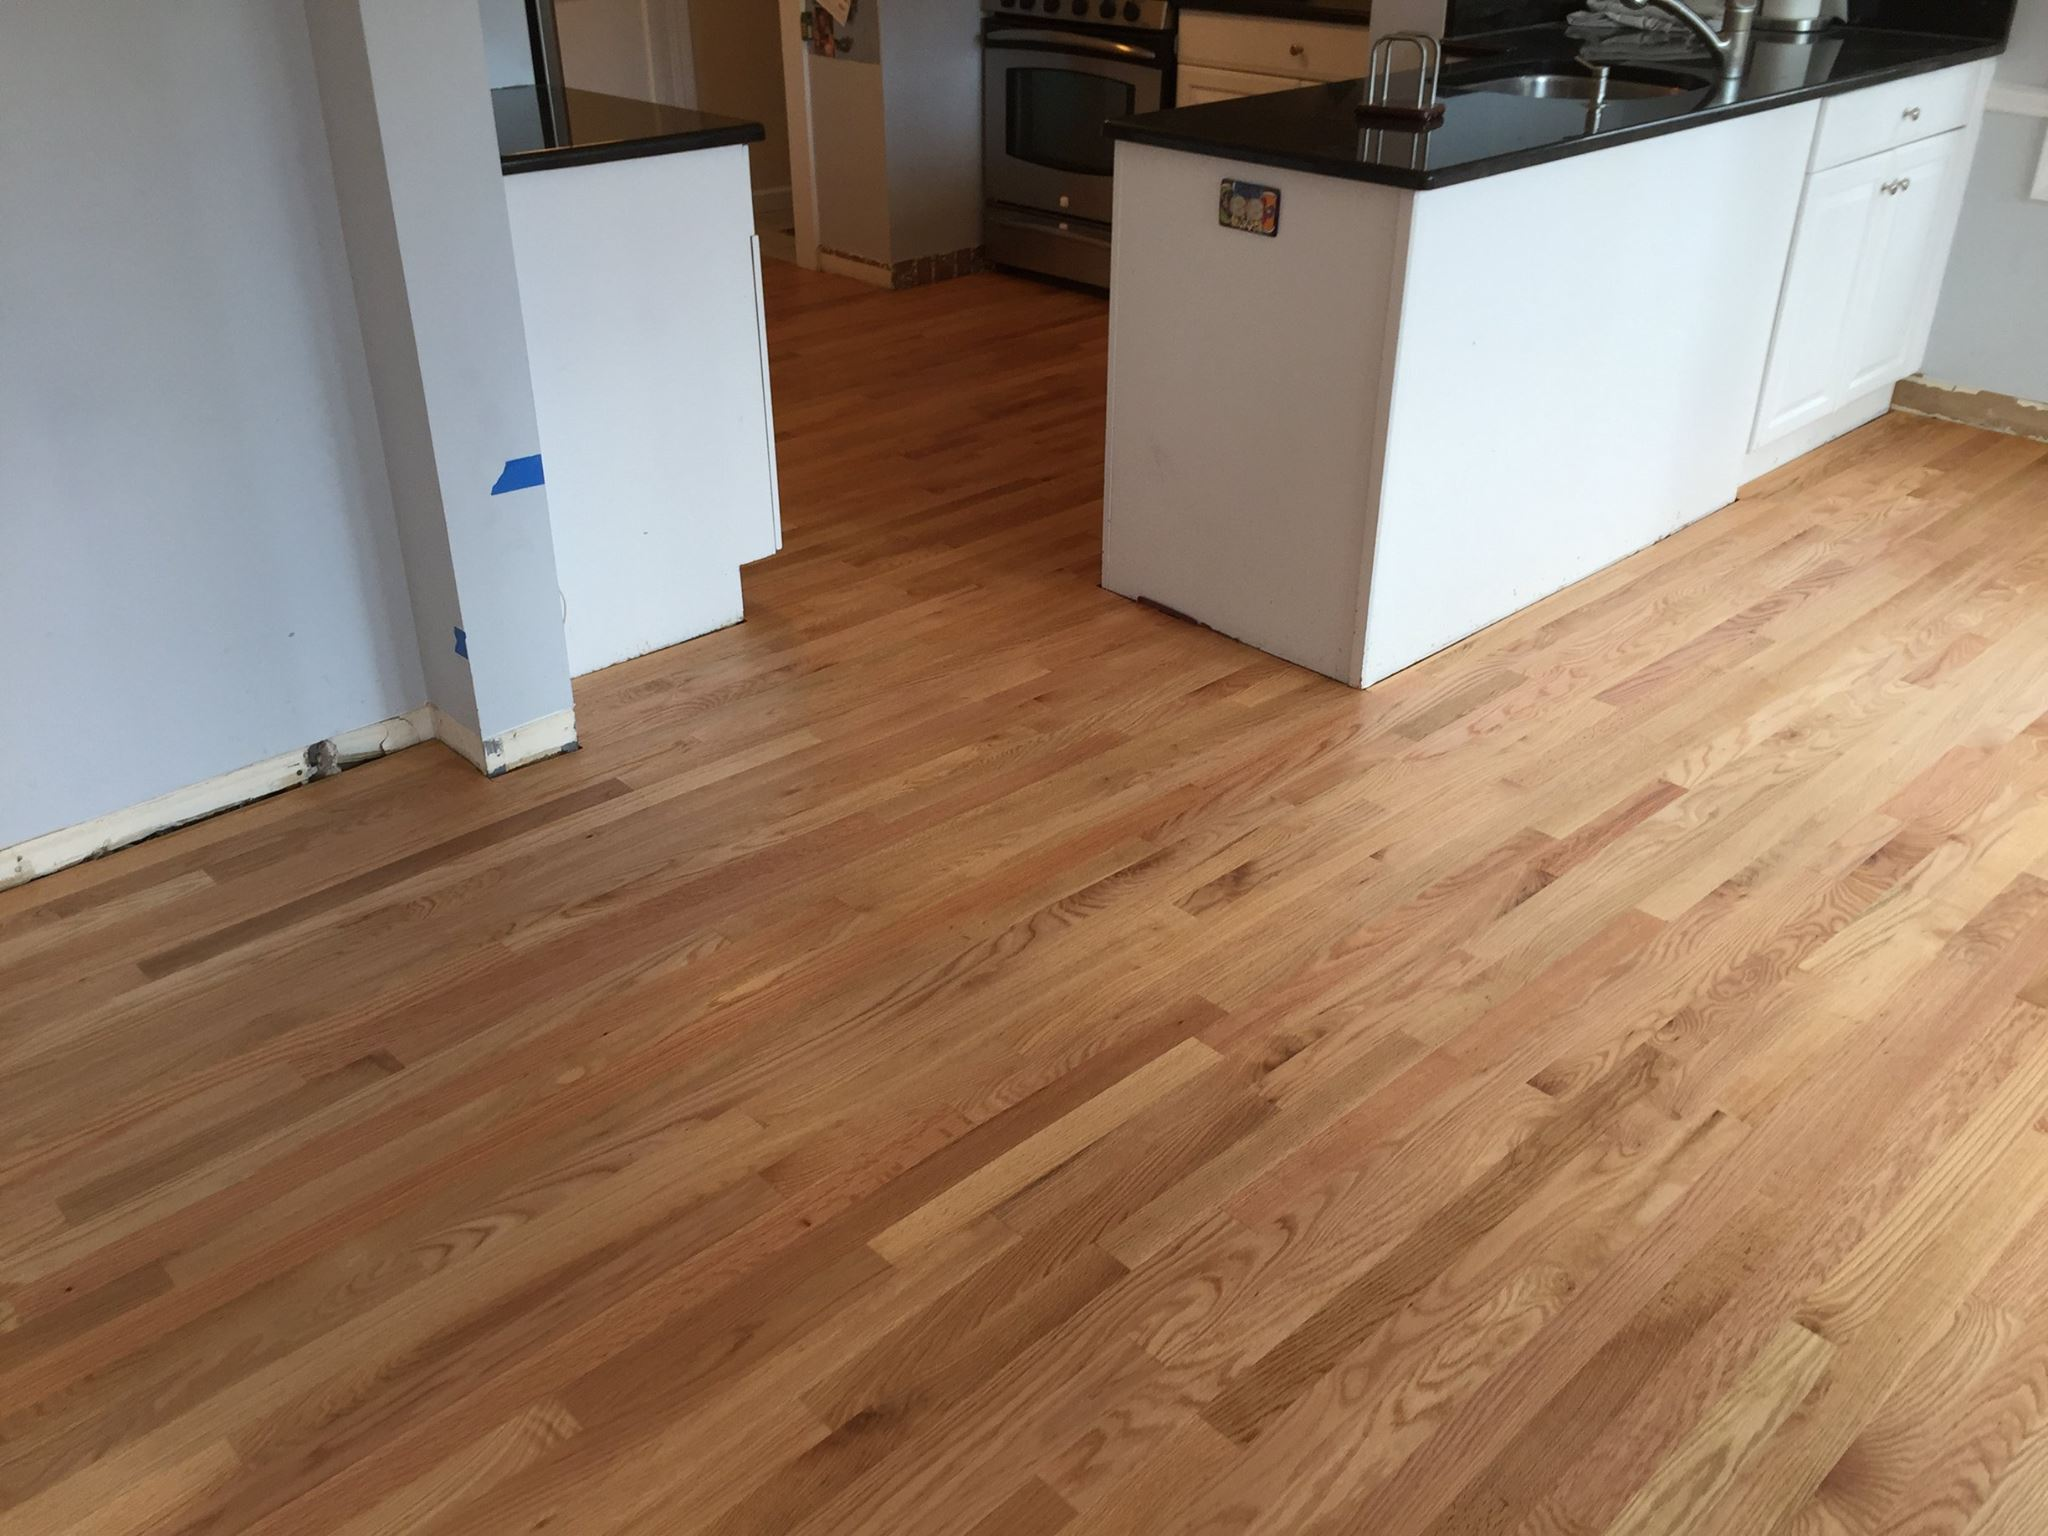 The Other Option To Keep Your Hardwood Flooring Safe And Clean Is Precautions